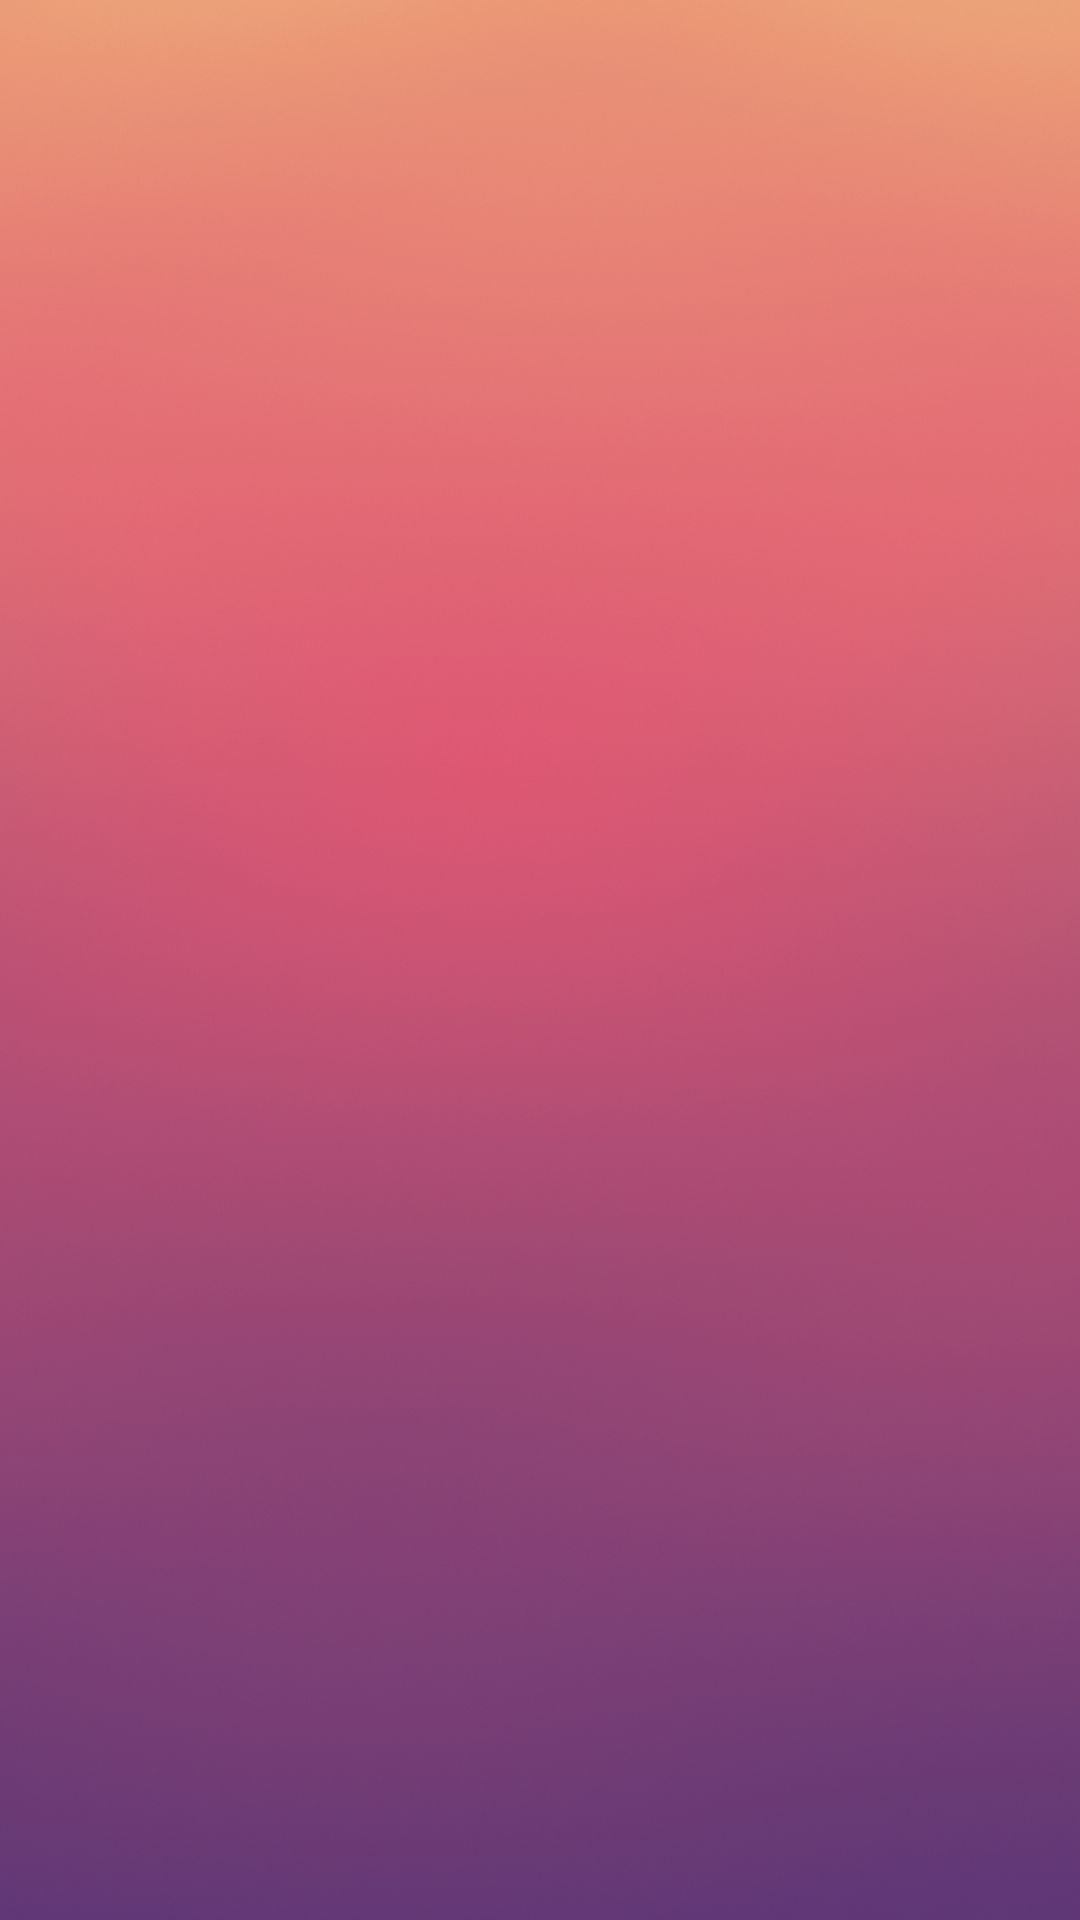 Hd Wallpapers For Pc 4k Abstract Mauve Best Htc One Wallpapers Free And Easy To